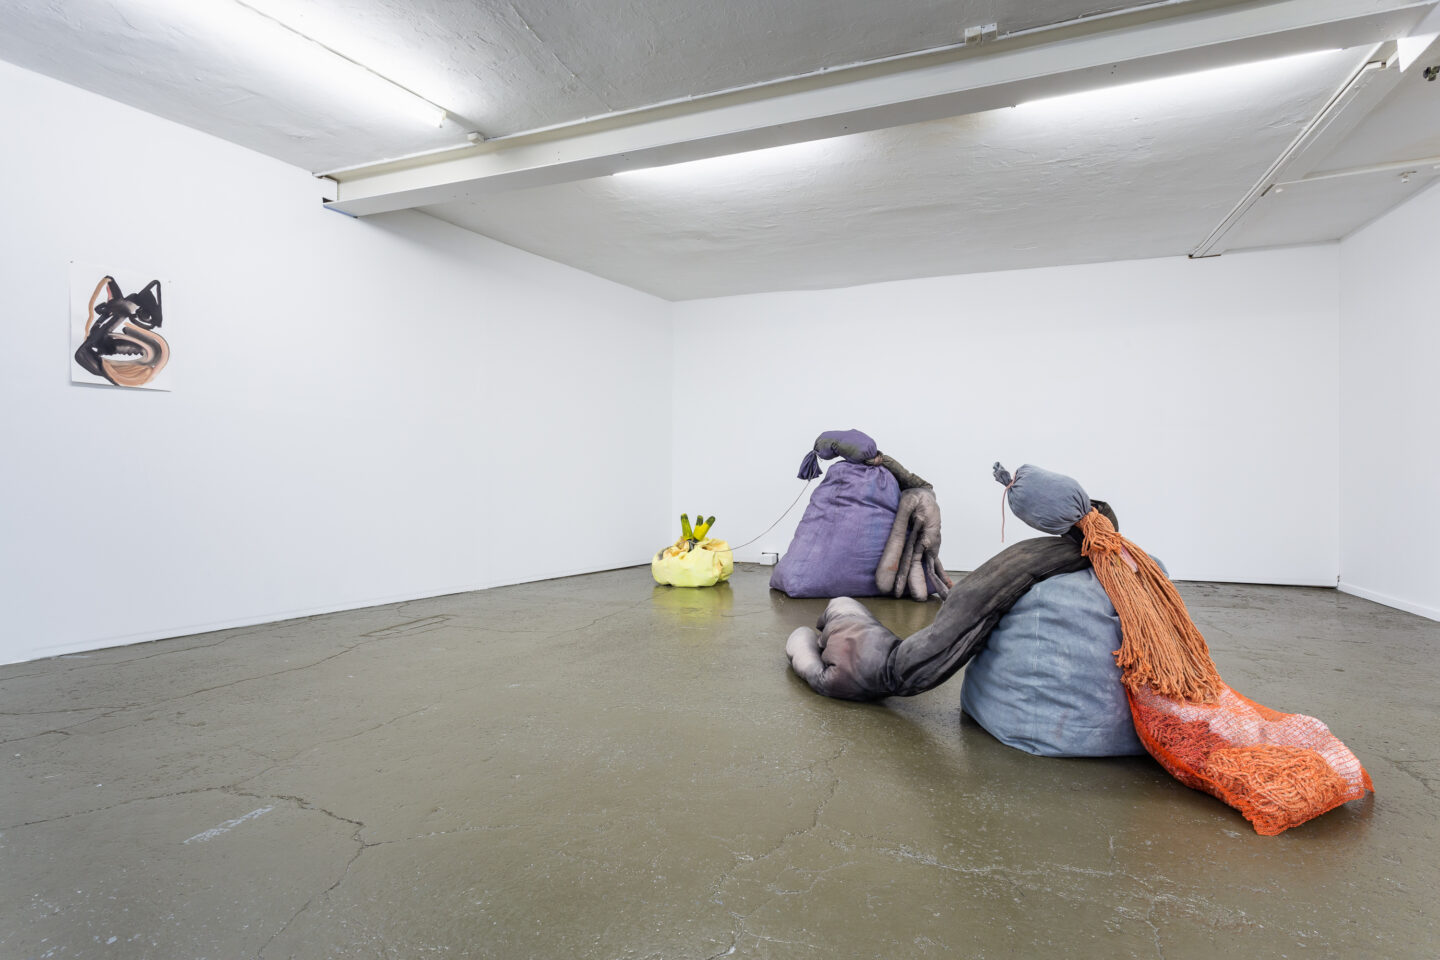 Exhibition View Groupshow «Sarah Margnetti & Megan Rooney ; view on Megan Rooney, Kaput Kaput, 2019» at Last Tango, Zurich / Photo: Kilian Bannwart / Courtesy: the artist and Last Tango